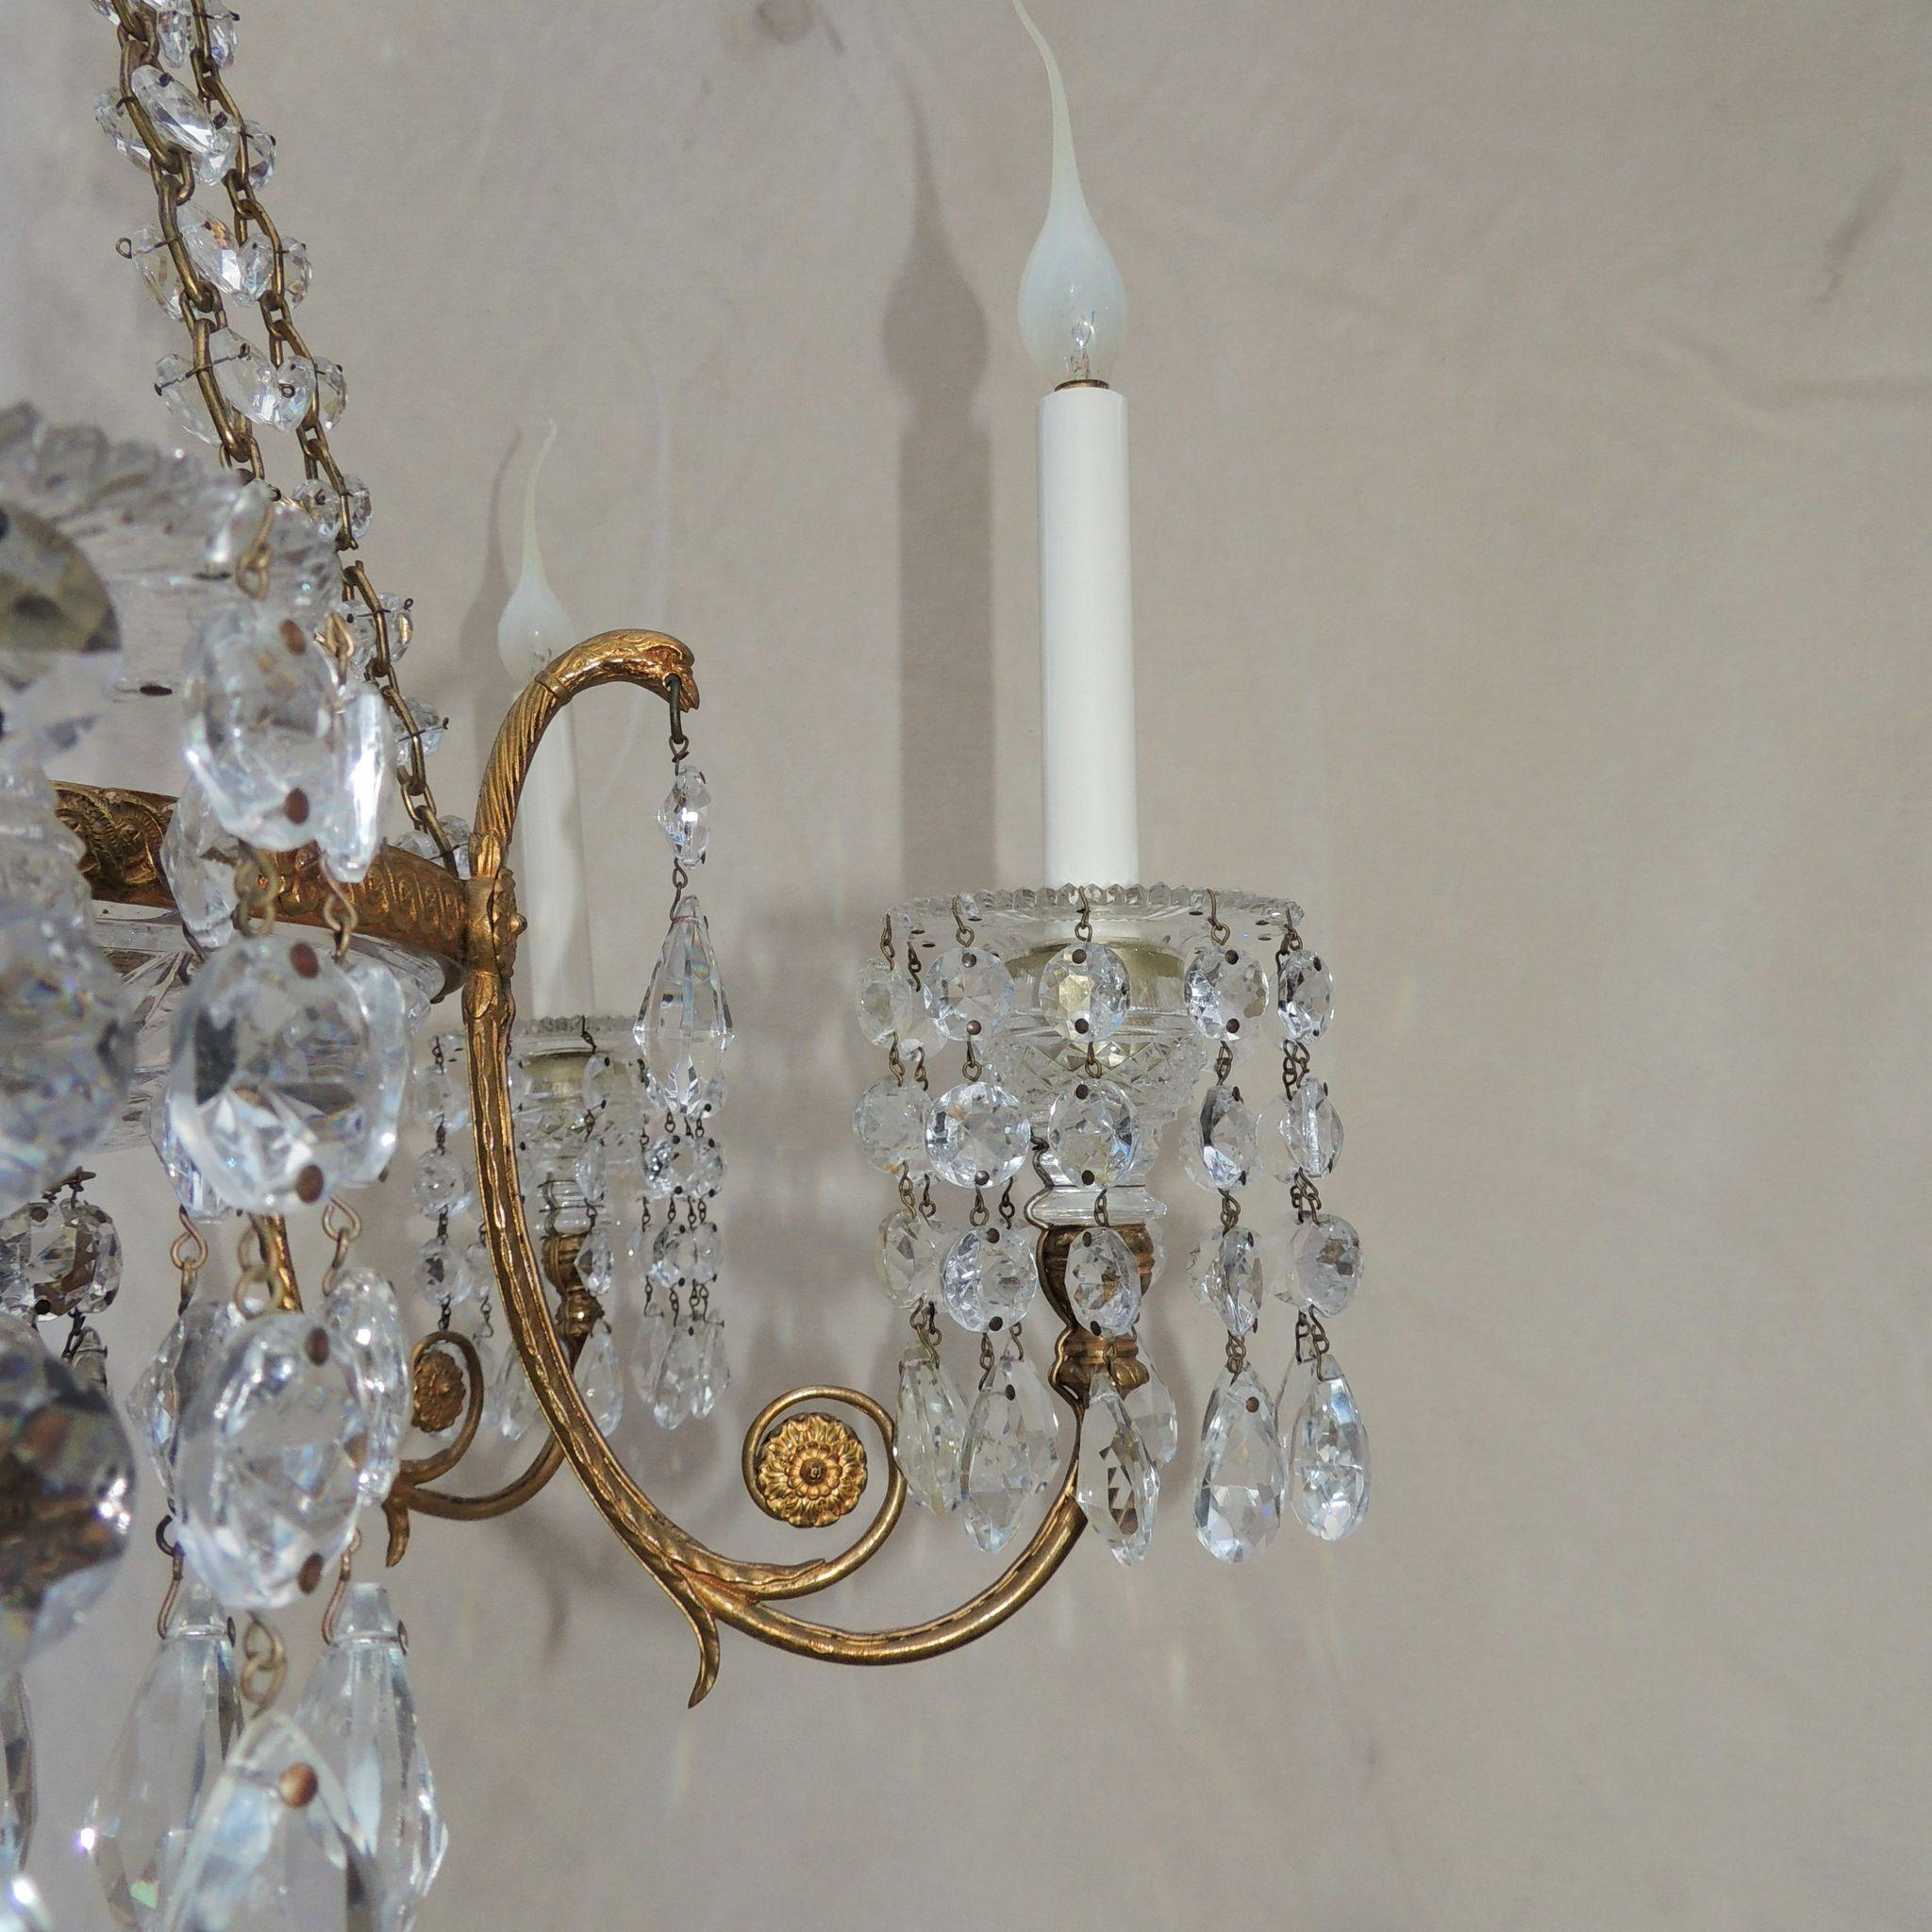 French Doré Bronze Cut Crystal Bowl Neoclassical Empire Chandelier